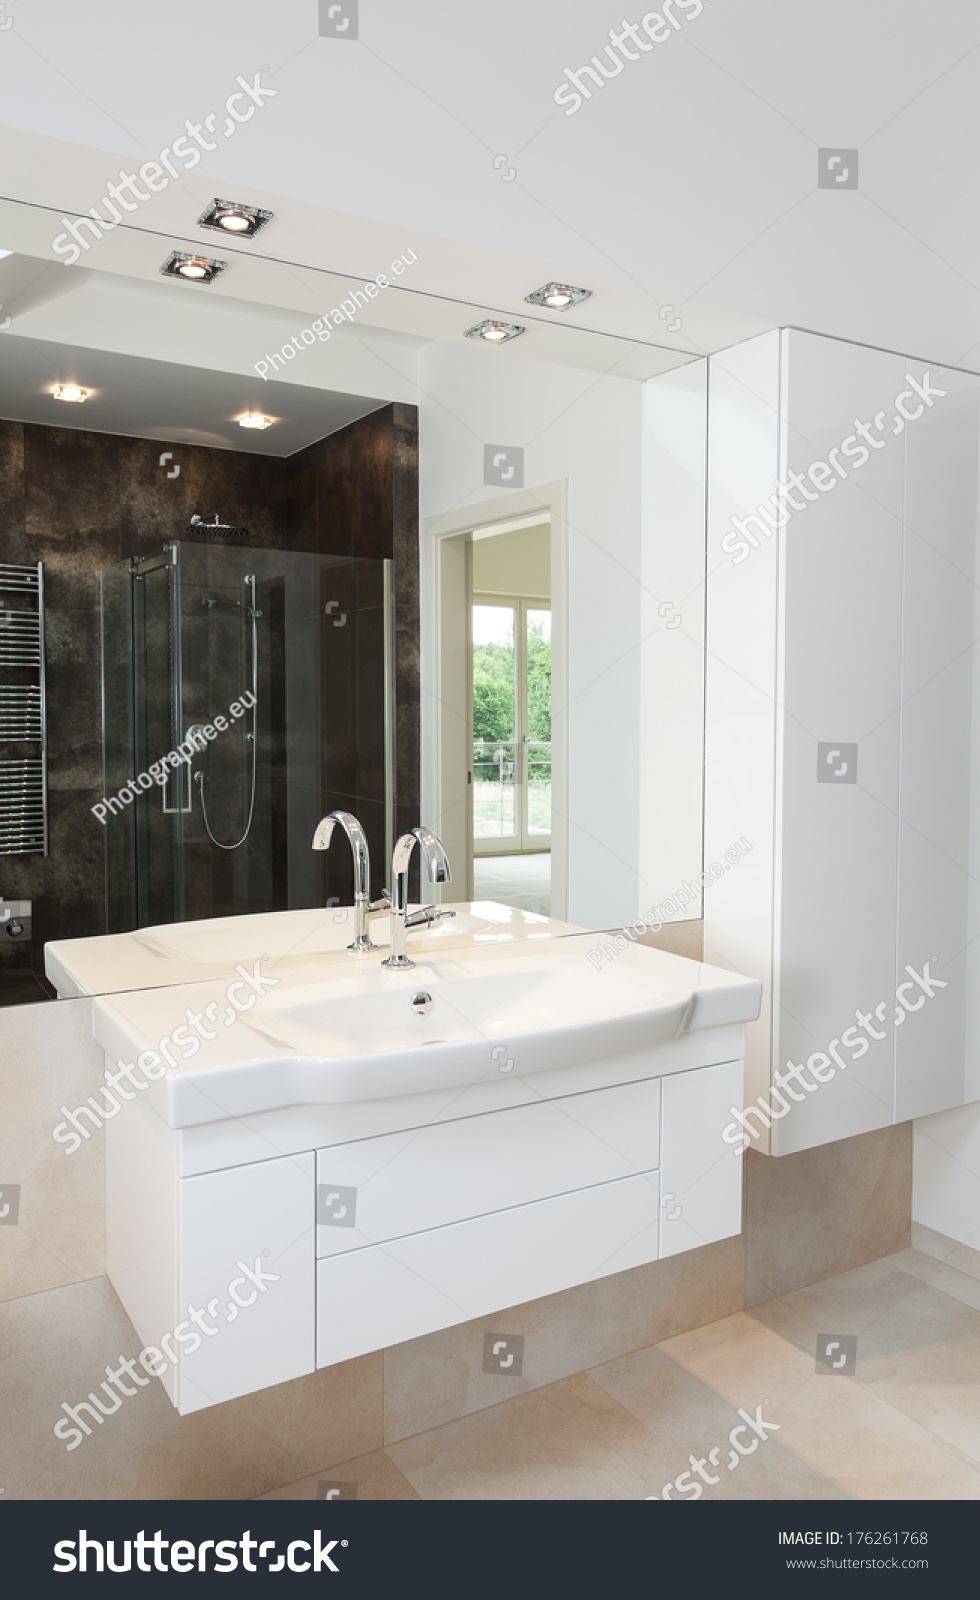 Contemporary white bathroom furniture, shelves and sink | EZ Canvas